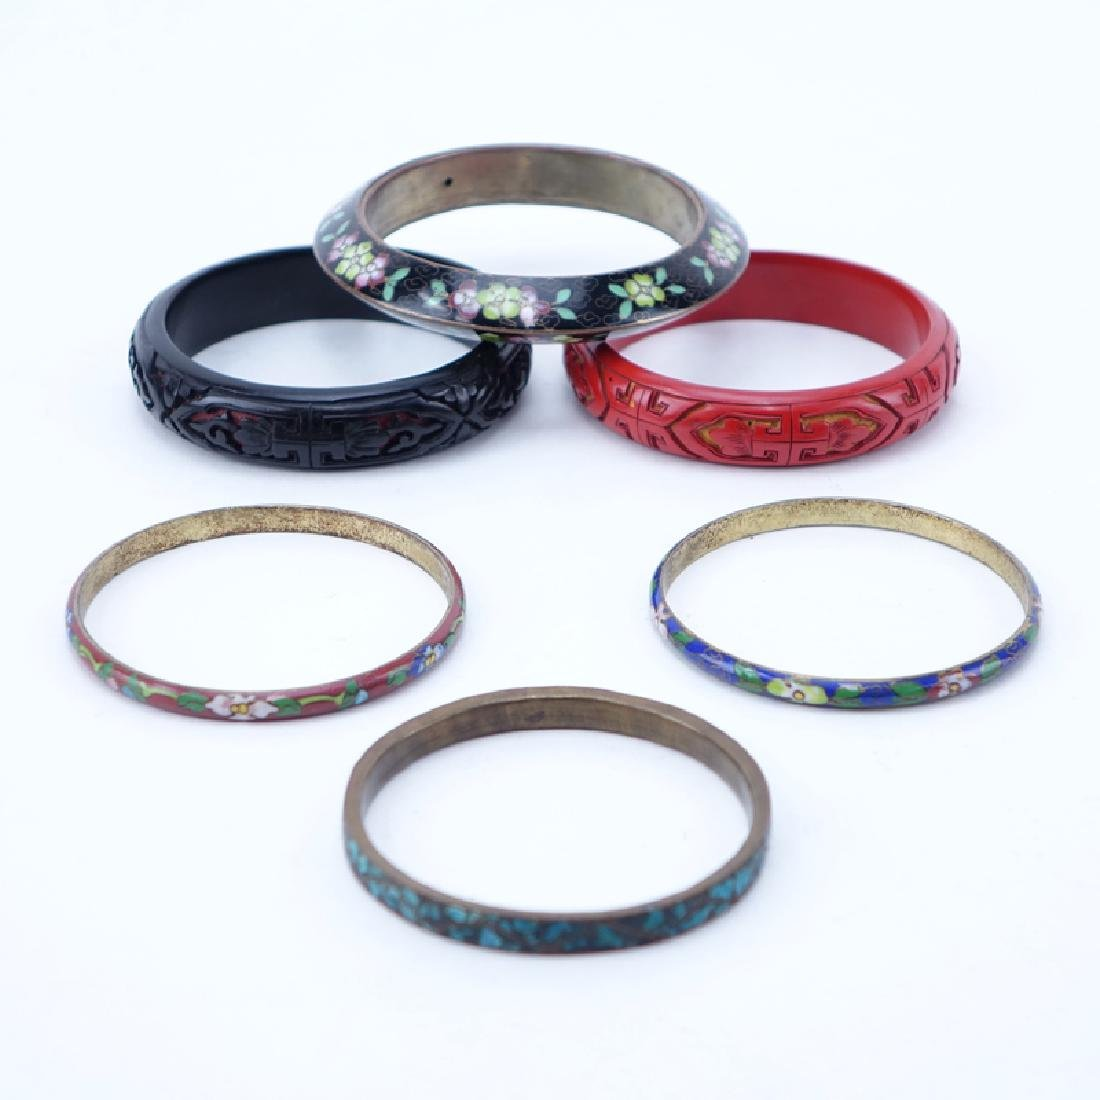 Collection of Six (6) Vintage Chinese Bangle Bracelets.